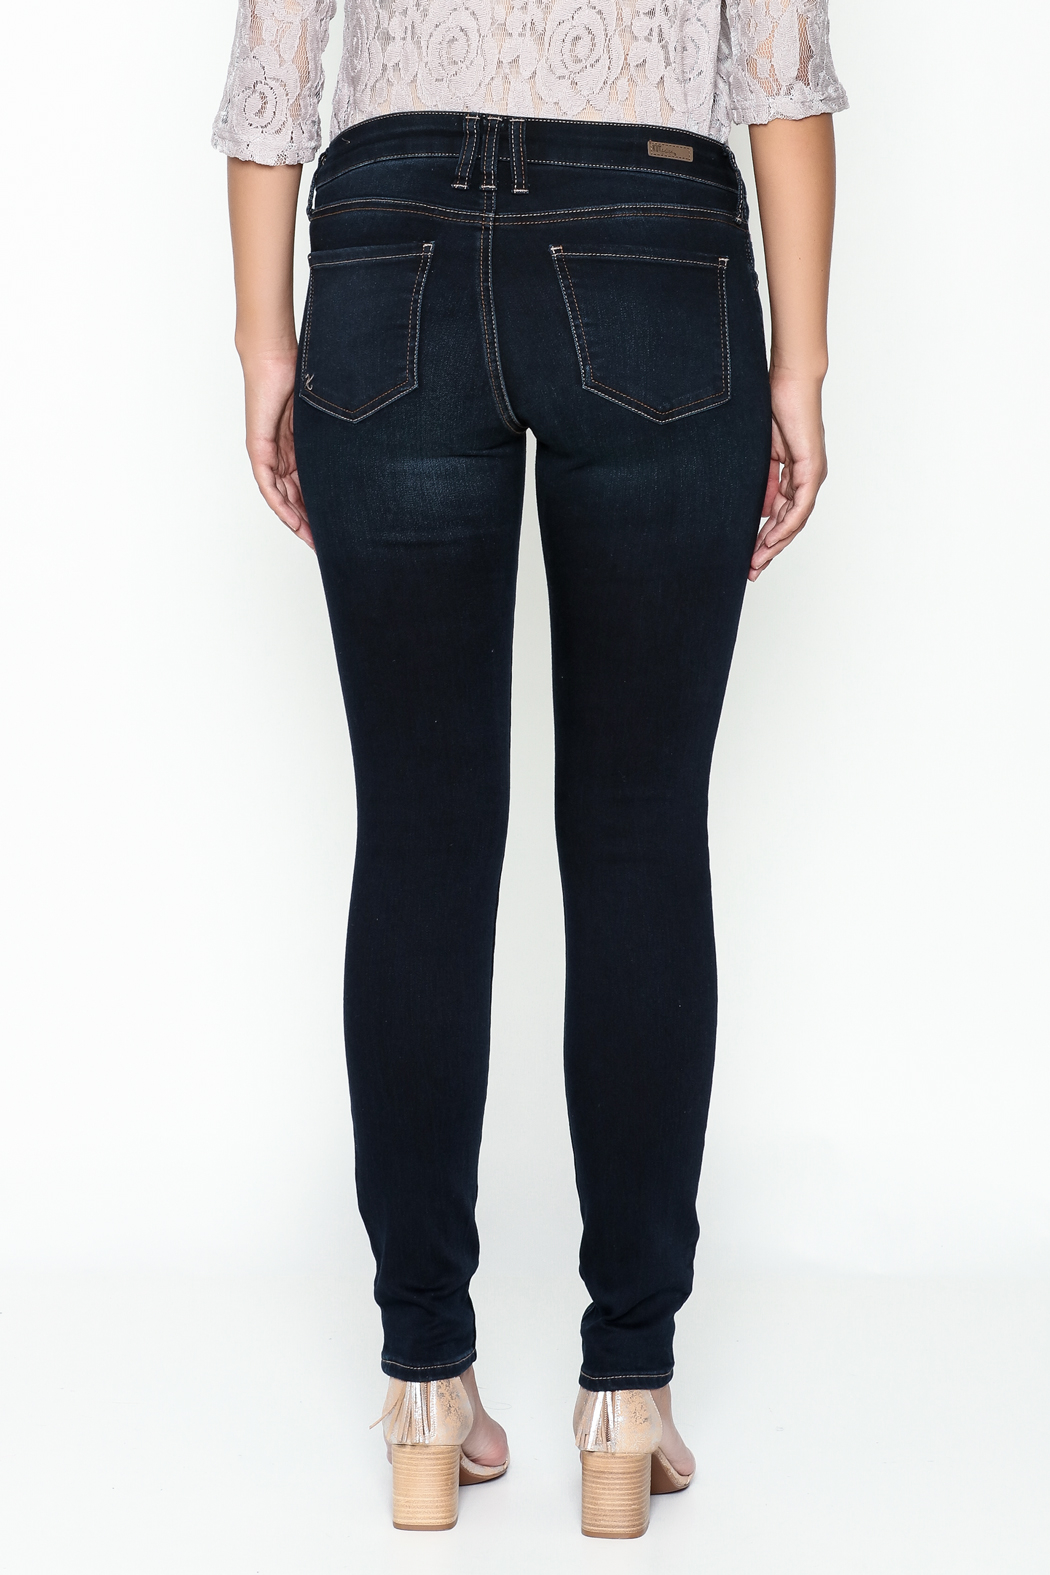 Kut from the Kloth Toothpick Skinny Denim Jeans - Back Cropped Image